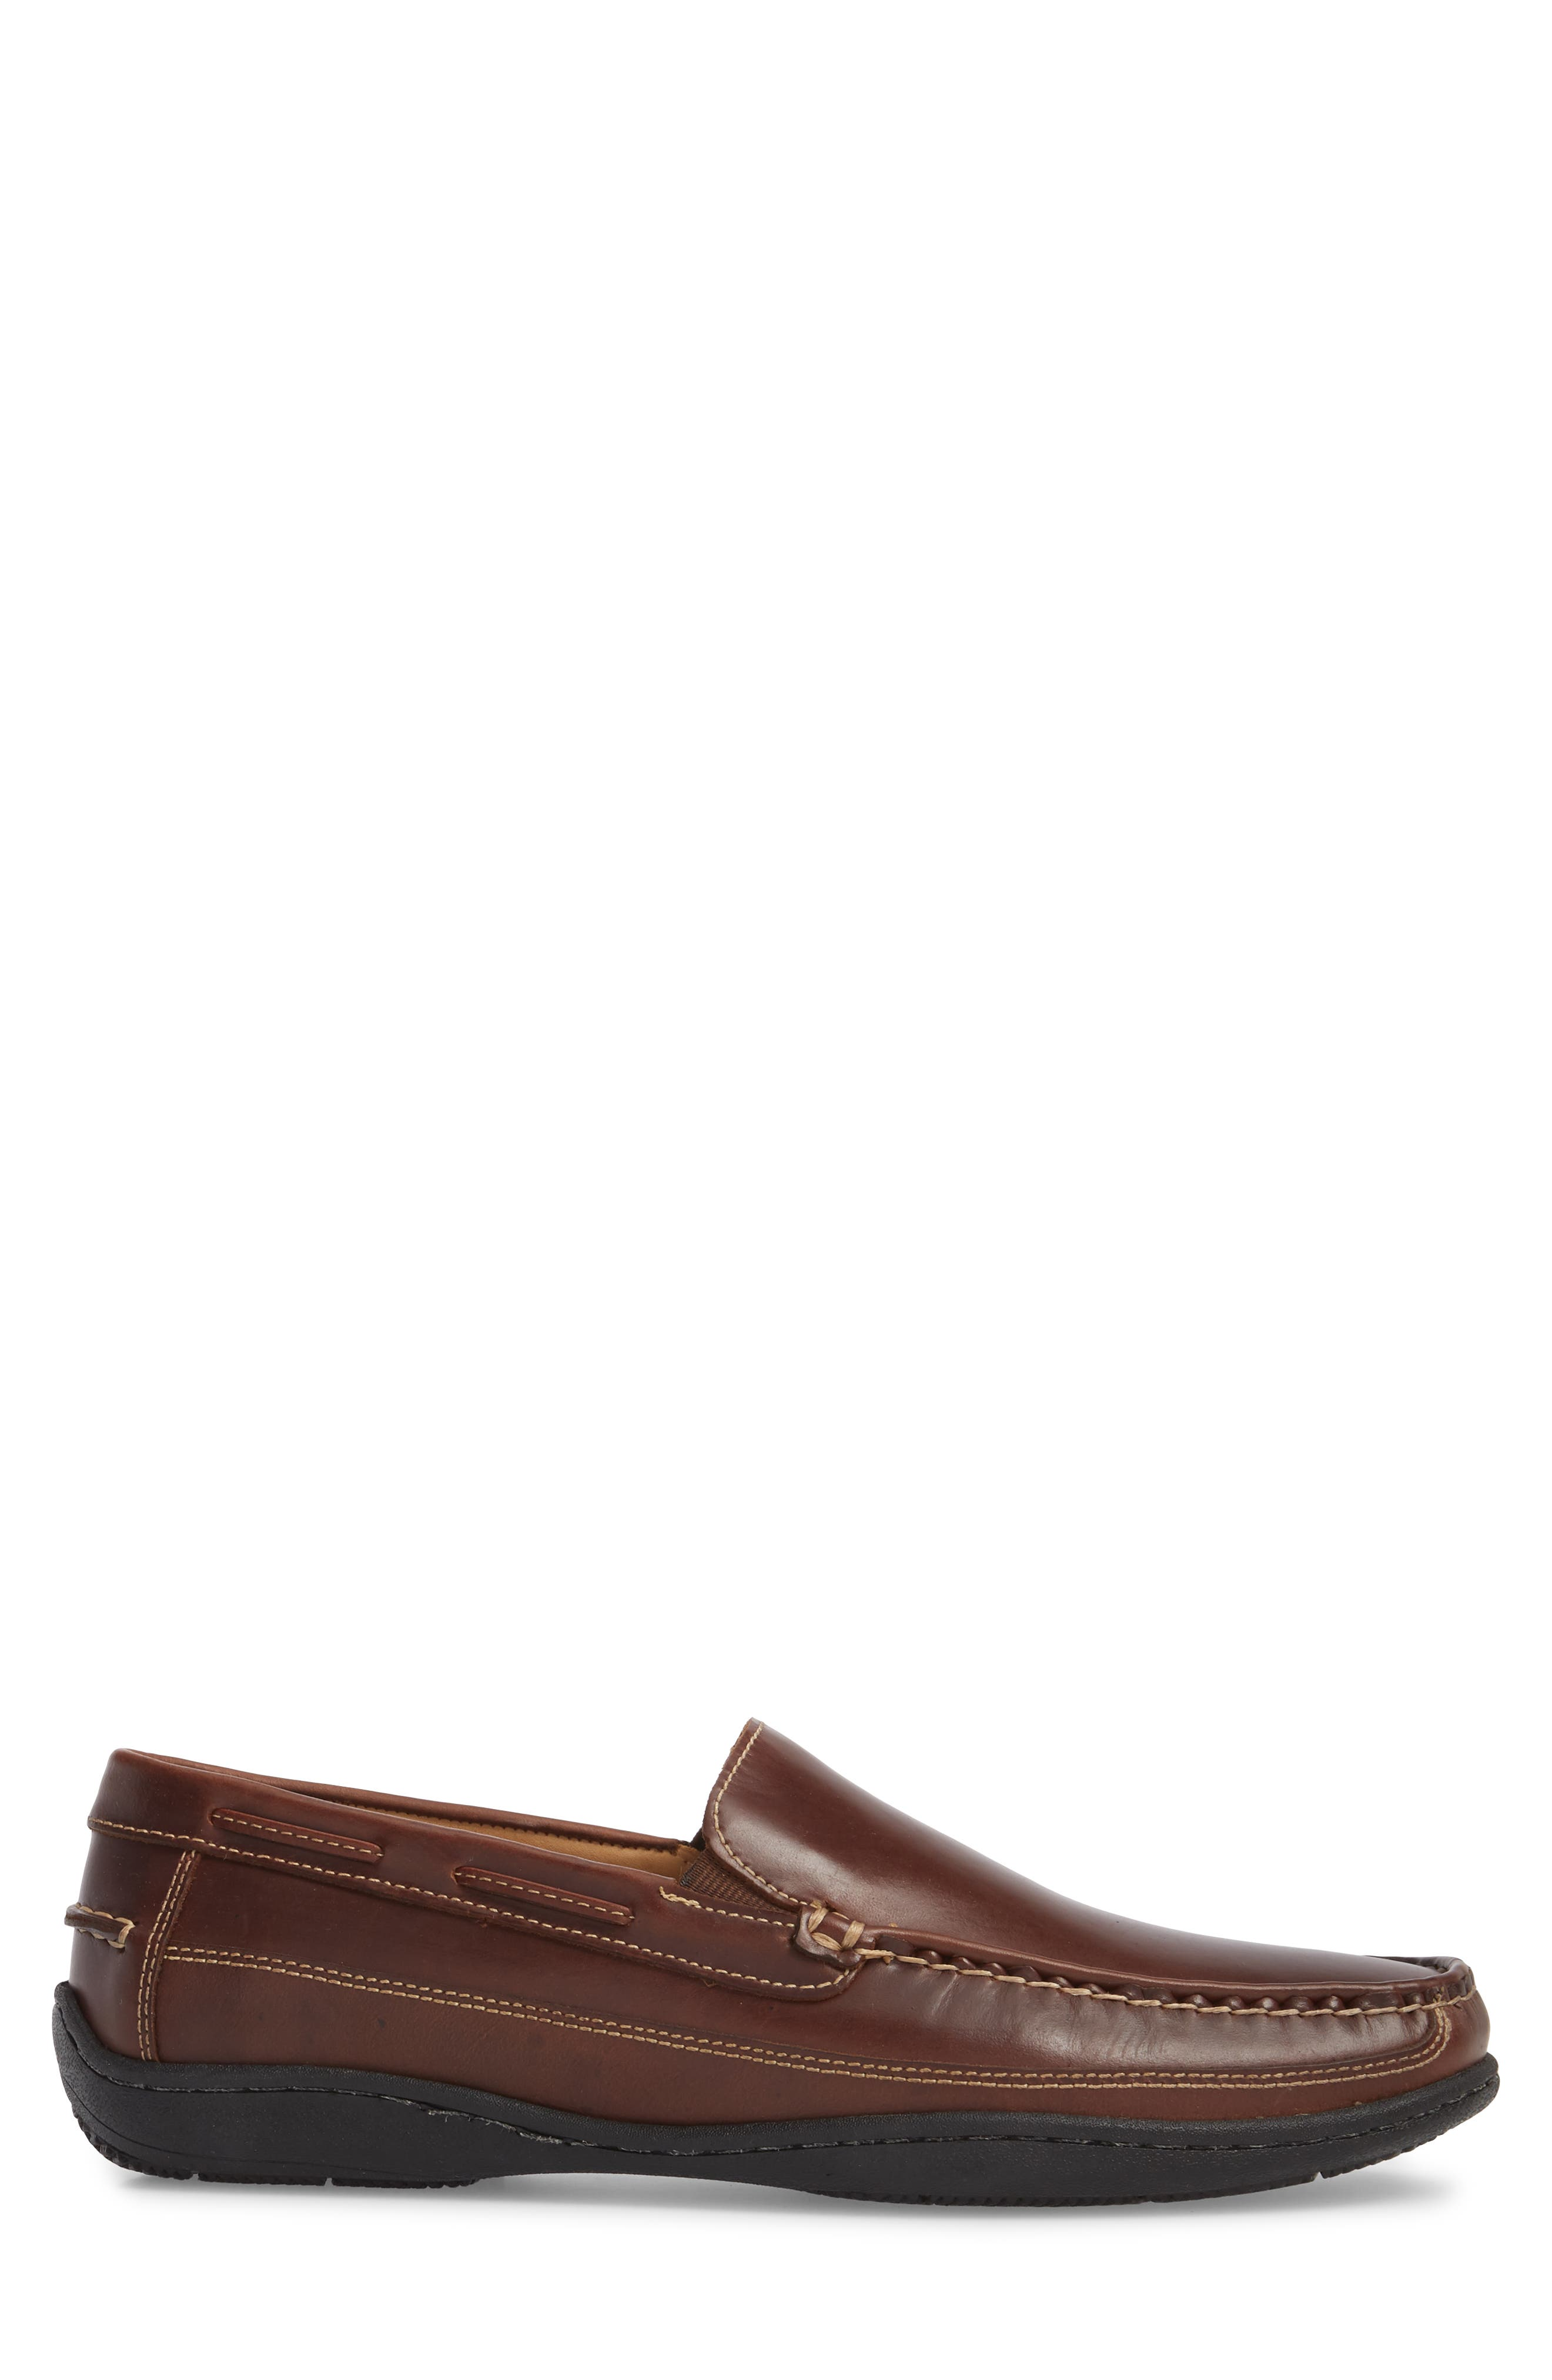 Fowler Moc Toe Loafer,                             Alternate thumbnail 3, color,                             Mahogany Leather